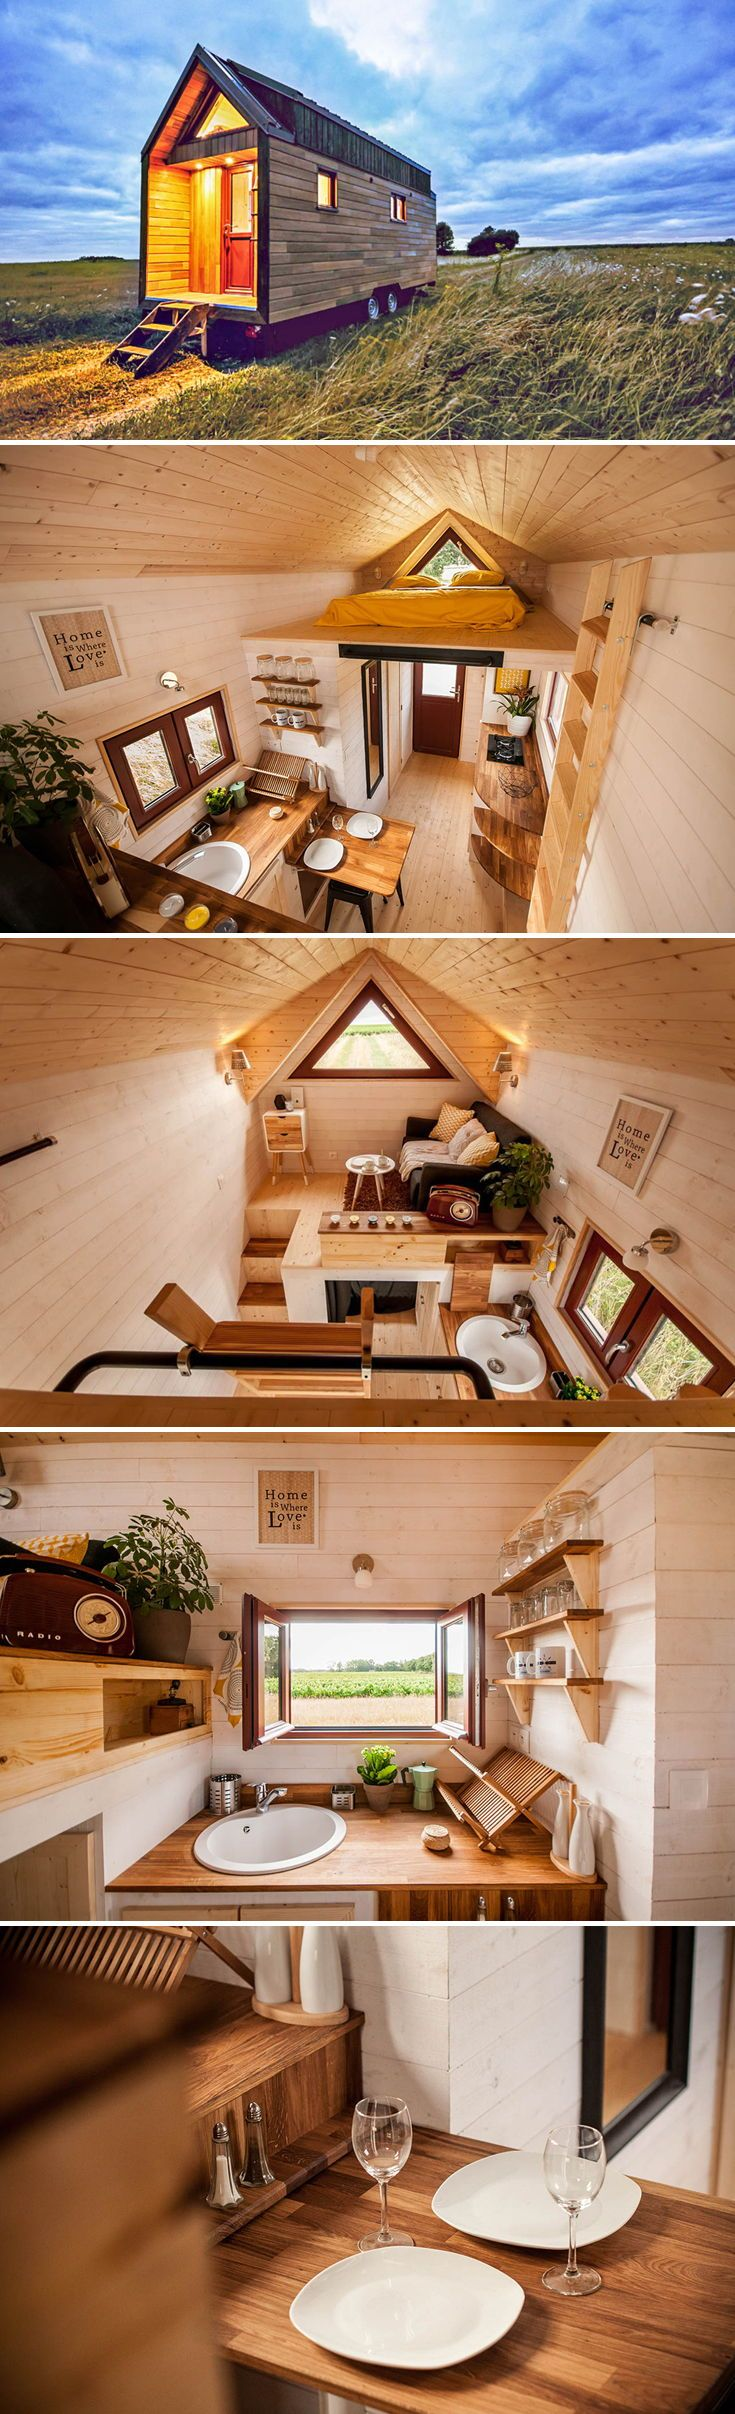 Based out of Nantes, France, tiny house company Baluchon created this custom 217-square-foot tiny house on wheels for their clients. The unique layout features an elevated living area above a short room that's used as a guest bedroom.